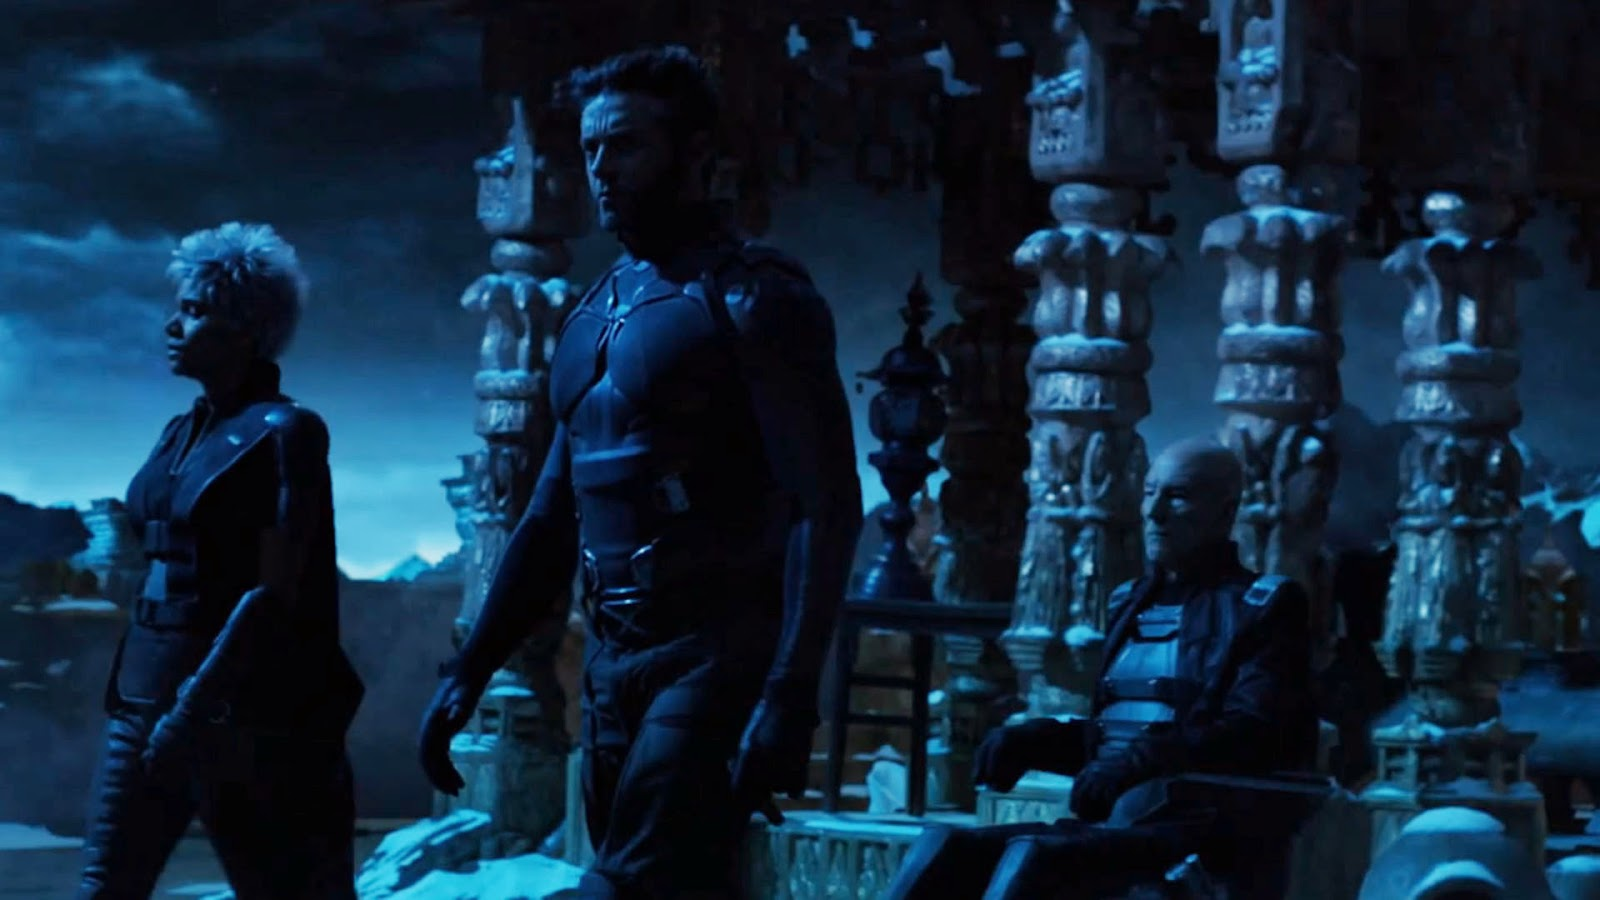 X-Men: Days of Future Past release date in Philippines